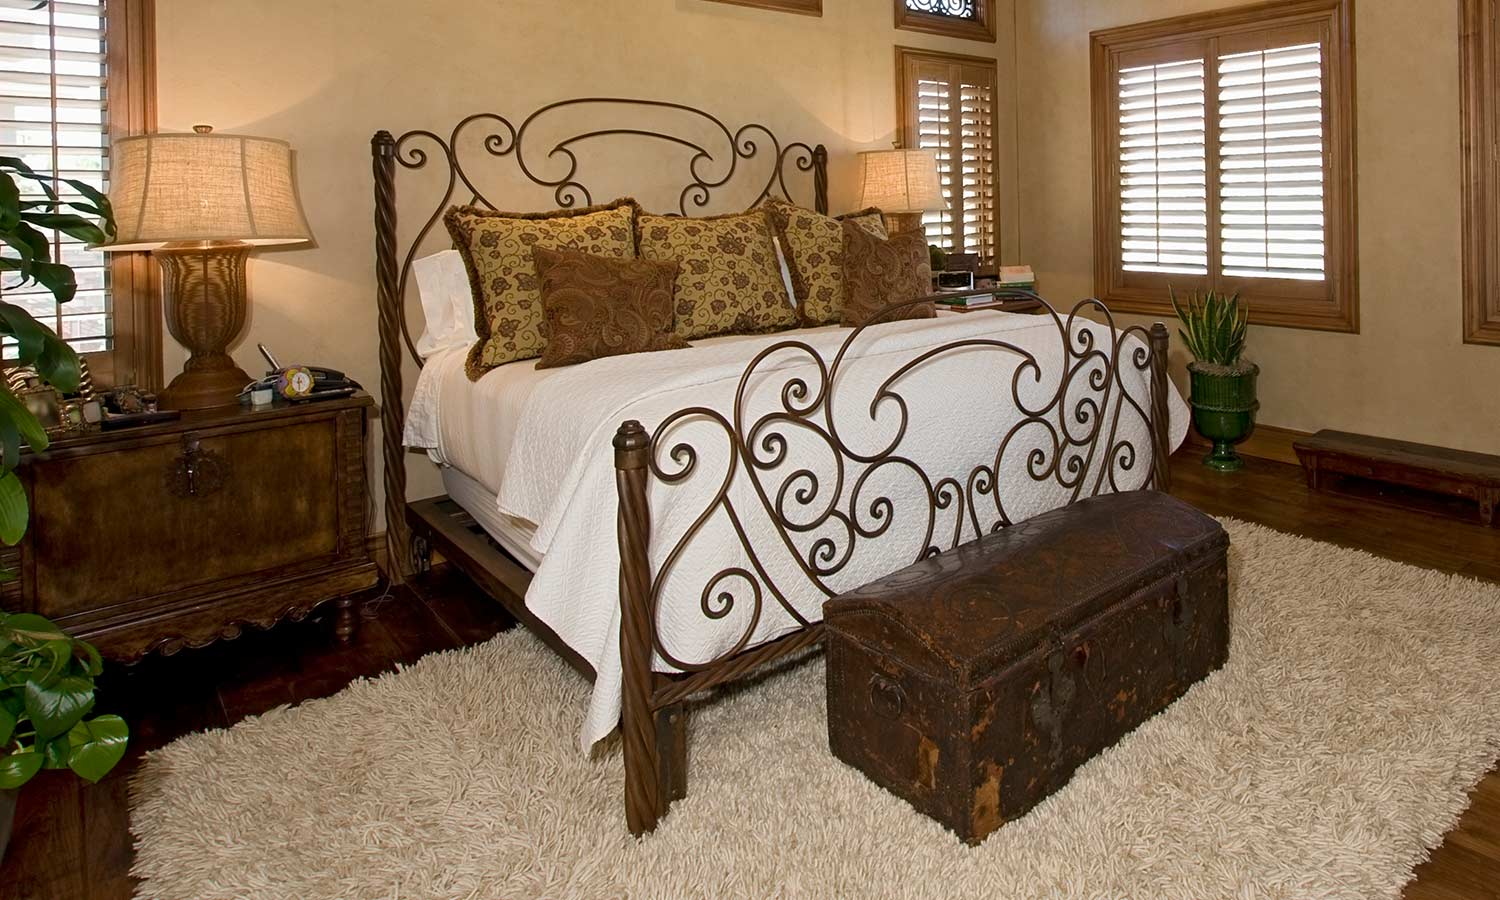 A metal bed frame with thin swirls woven throughout the headboard.